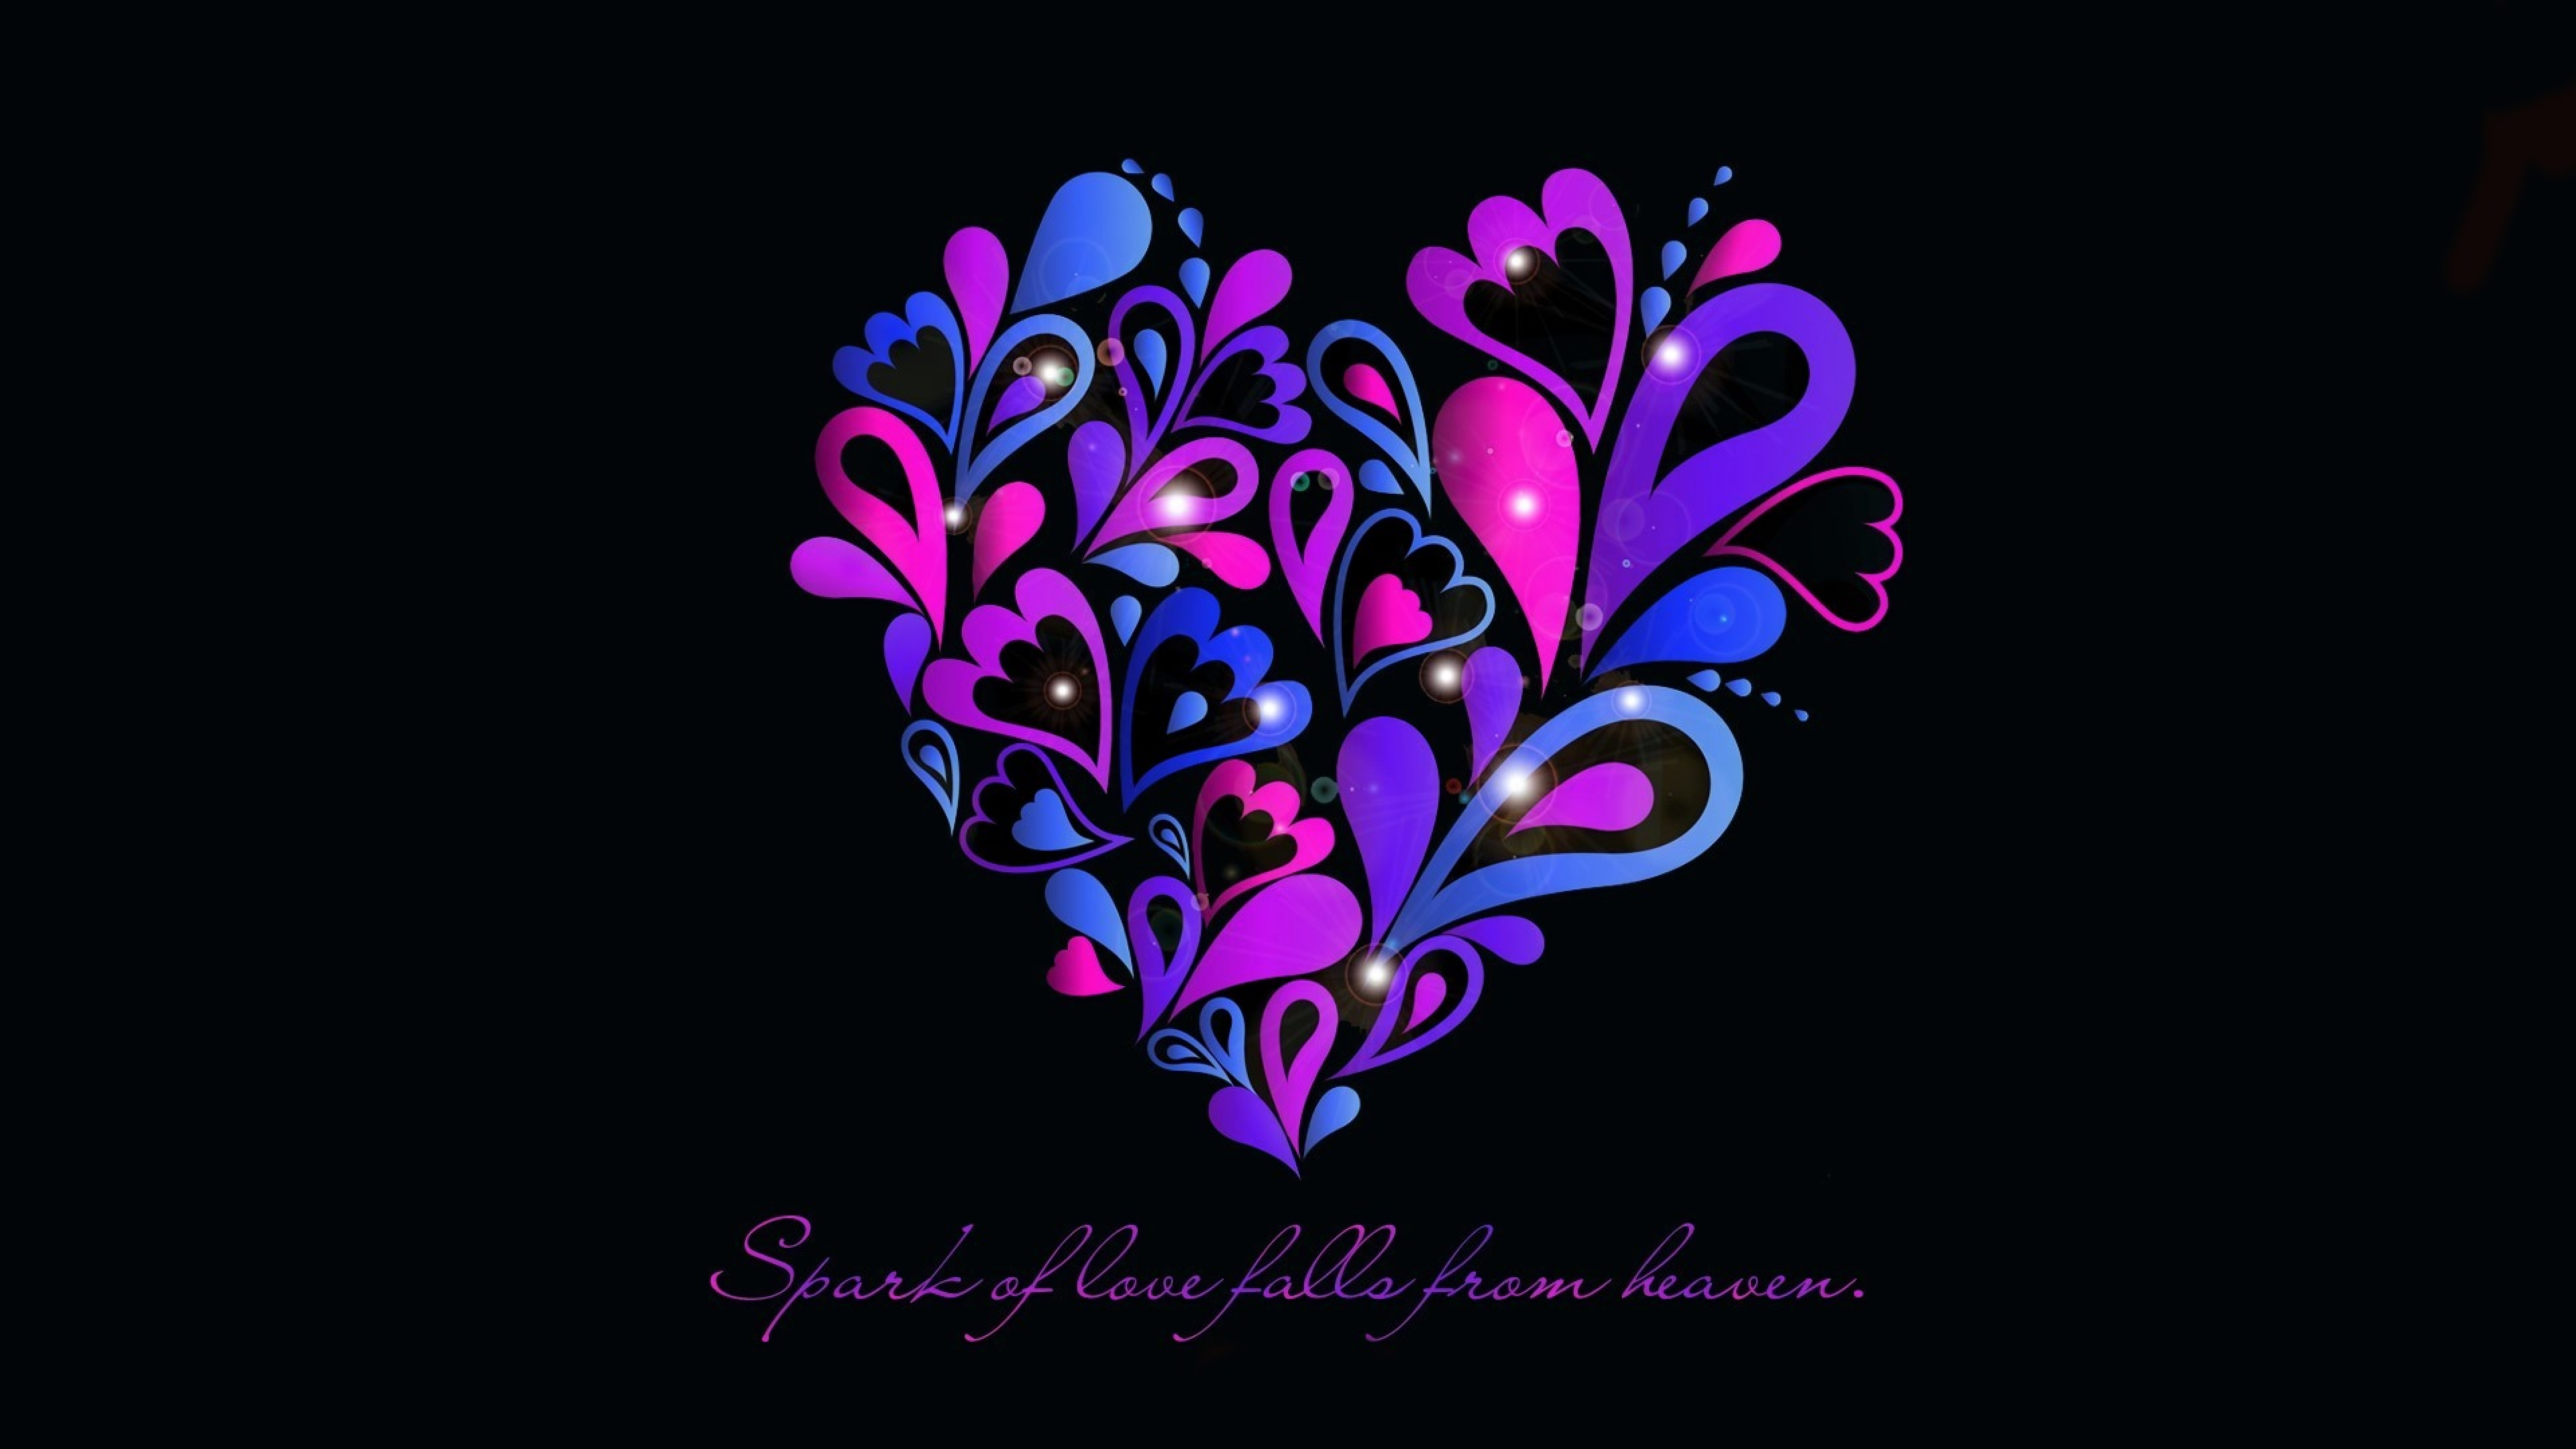 Top 25 Samsung Galaxy S4 Screen Saver Wallpapers: Spark Of Love Follow From Heaven, Full HD Wallpaper